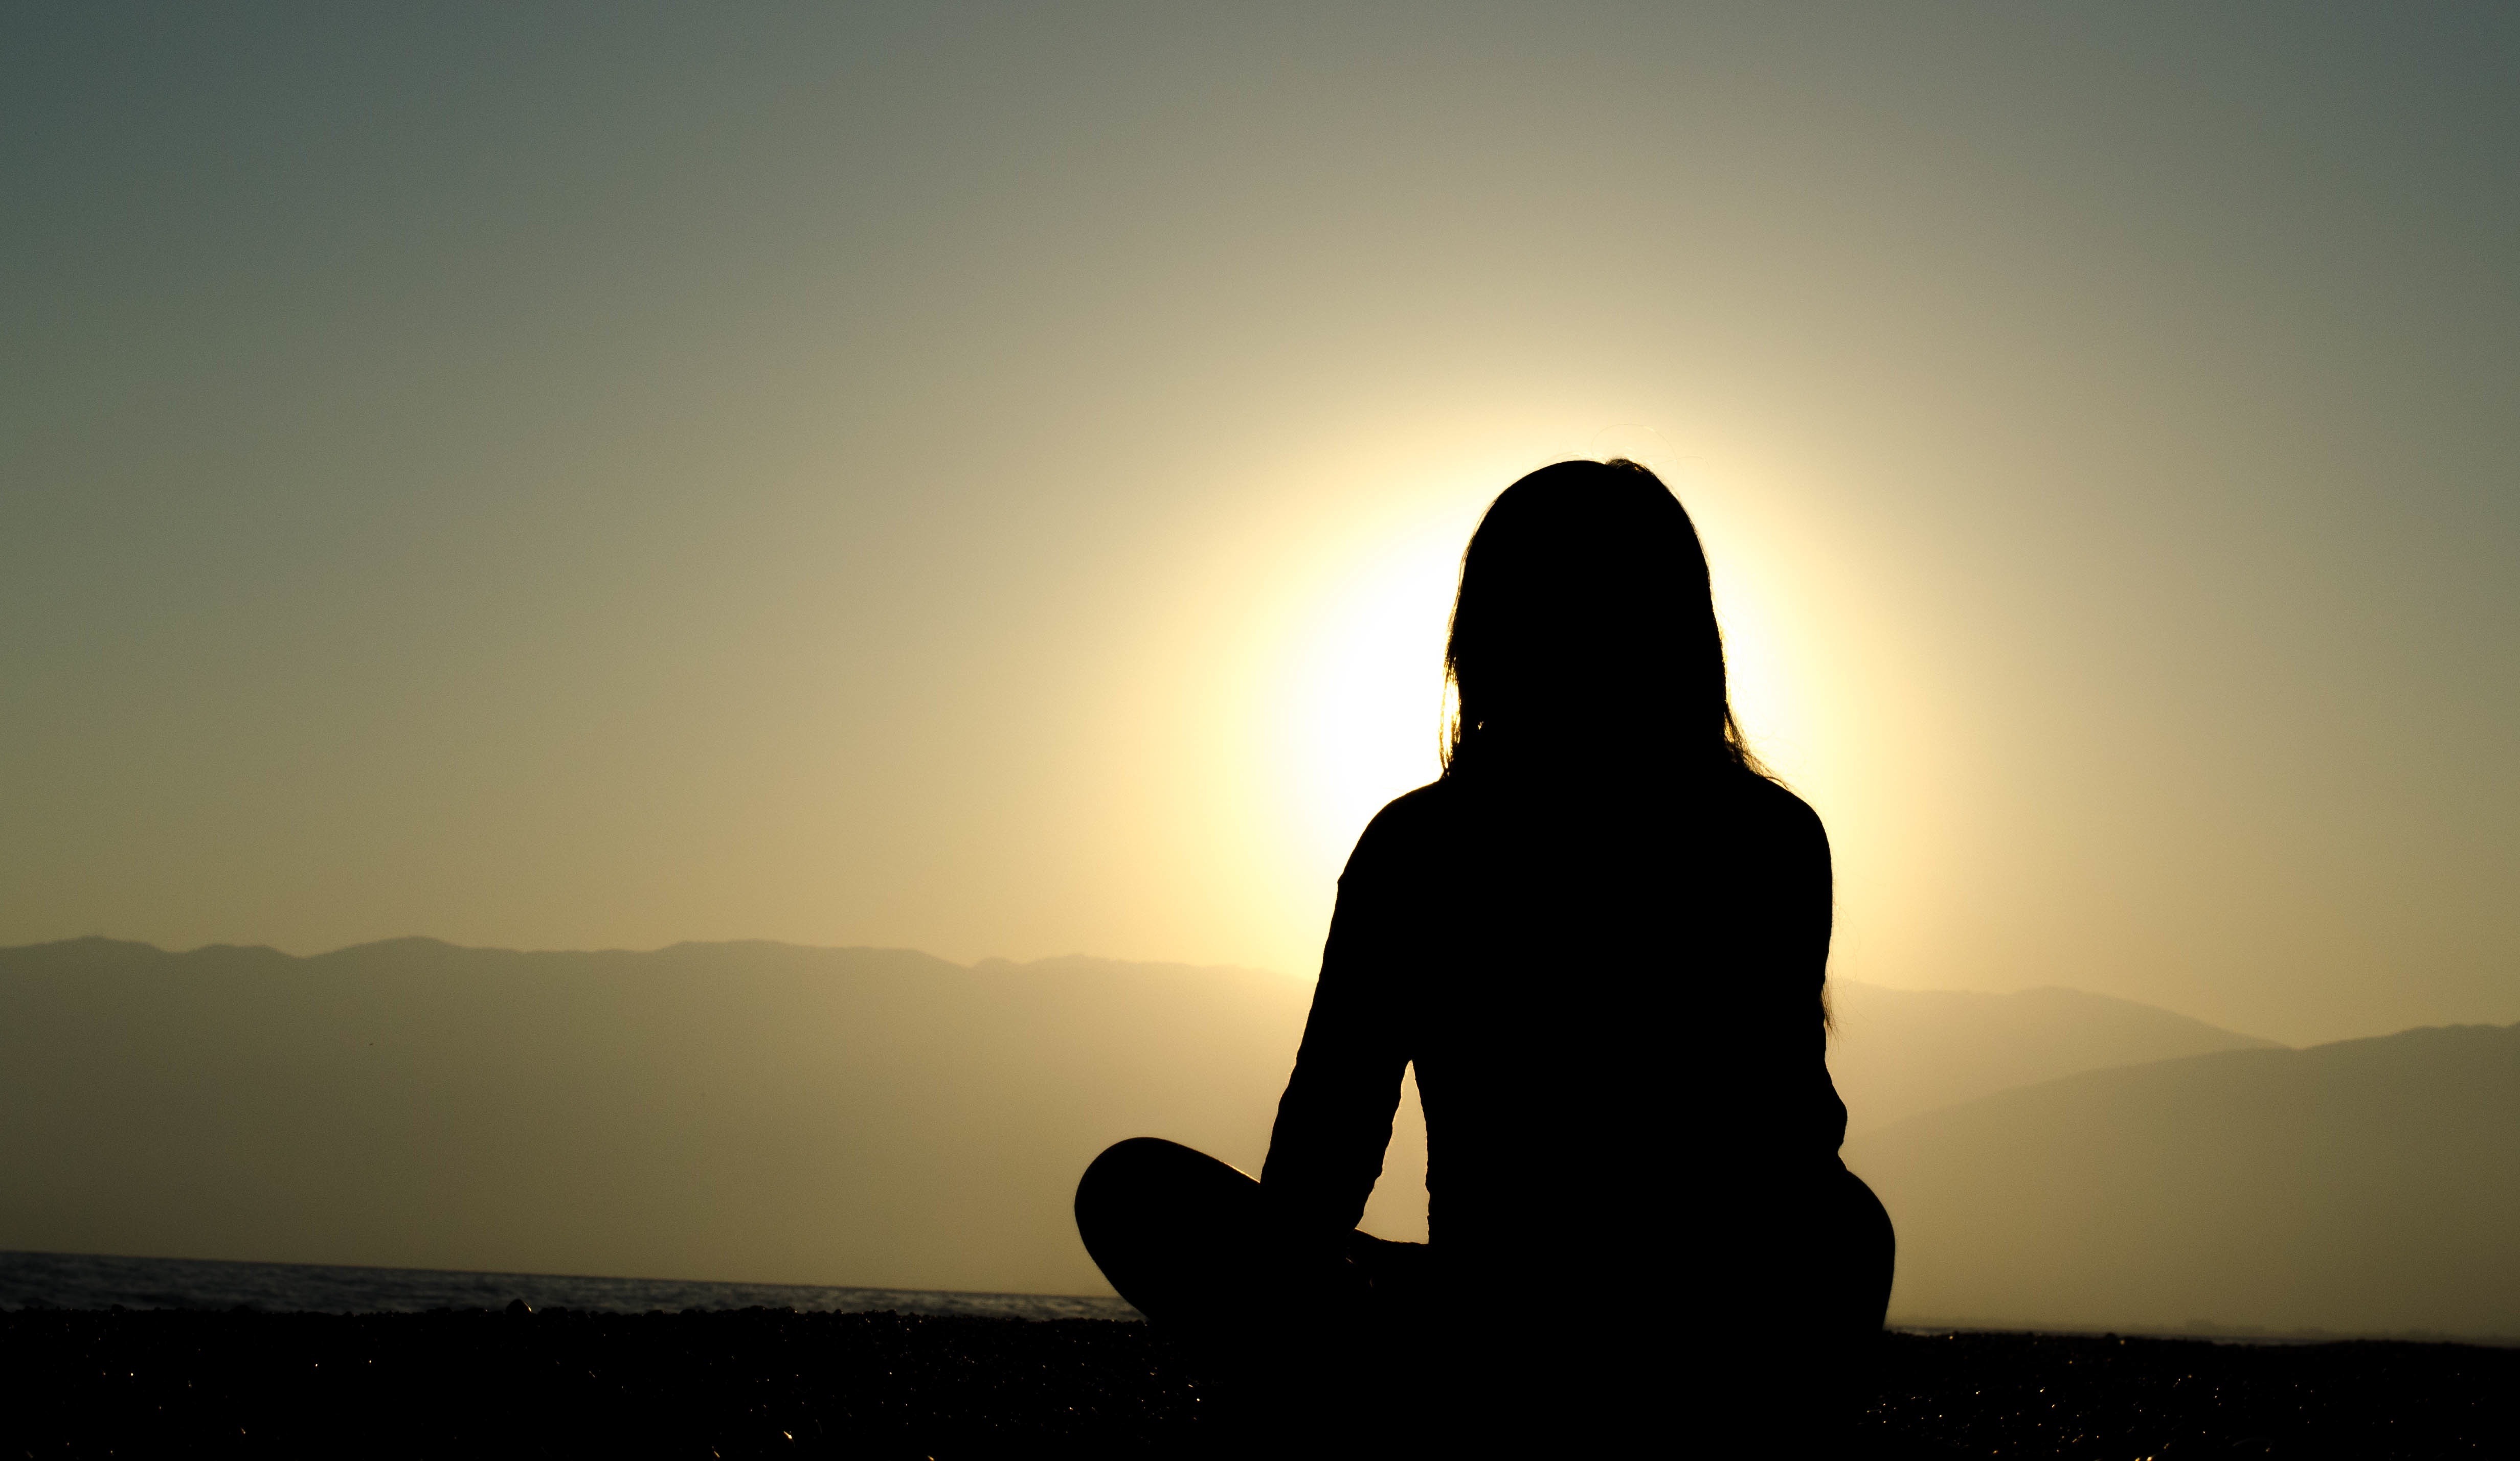 Silhouette of a woman meditating outside under the sunset